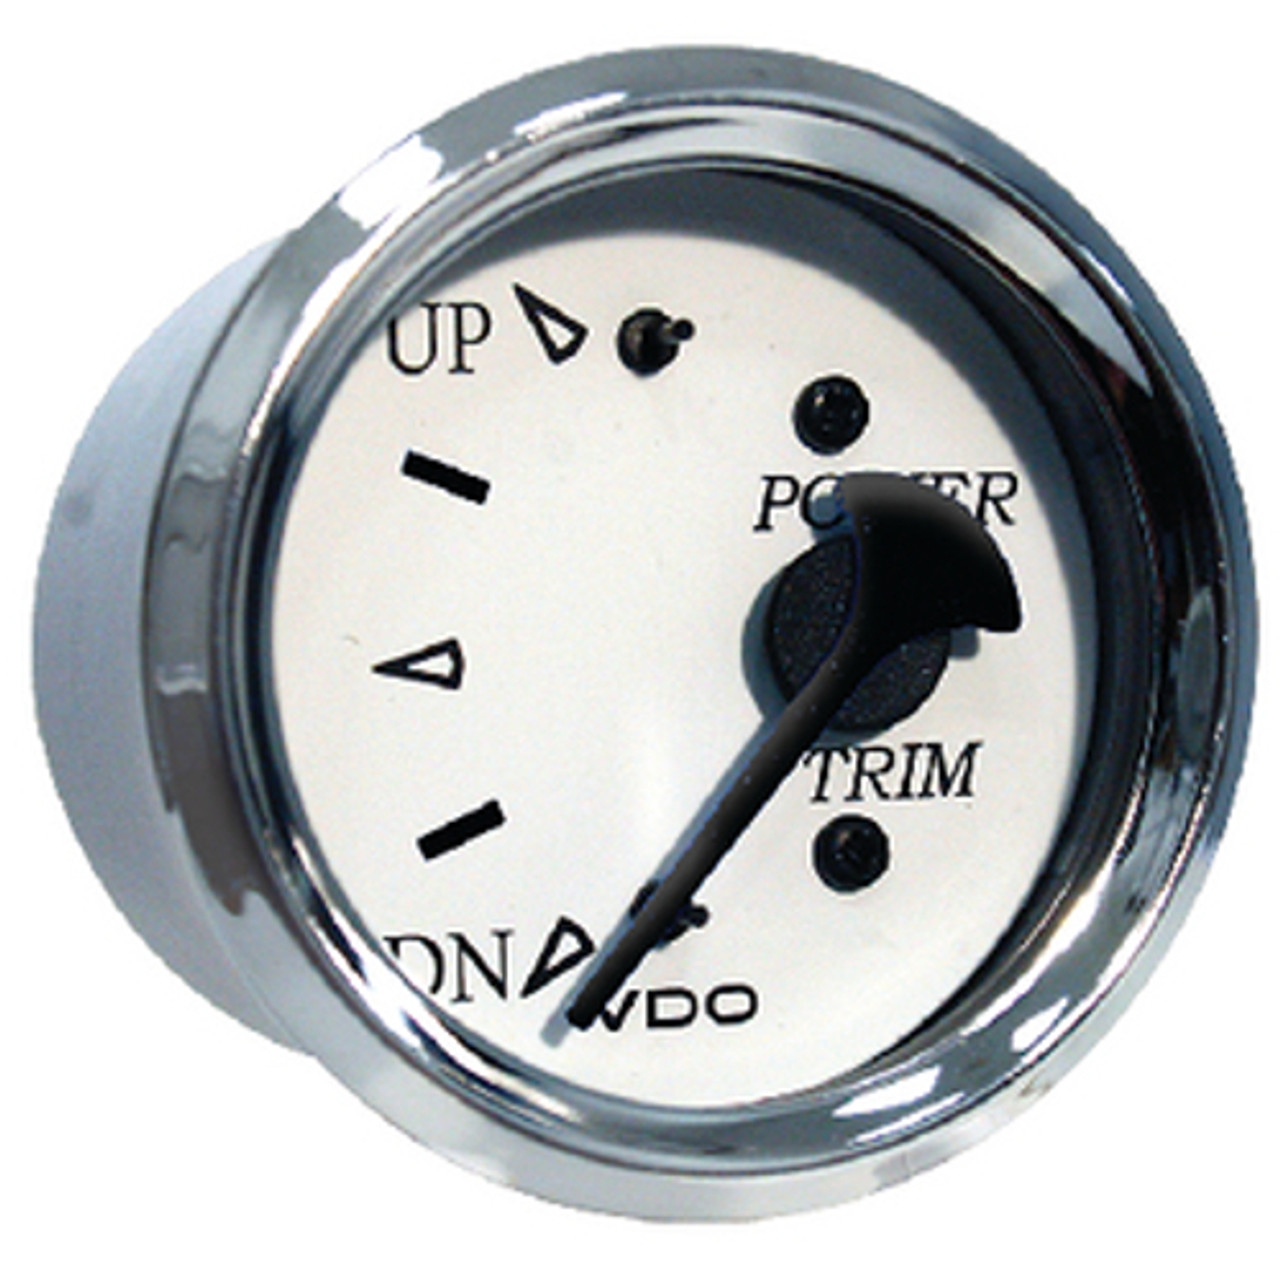 White Faced Honda Outboard Trim Gauge with Chrome Bezel for Boats